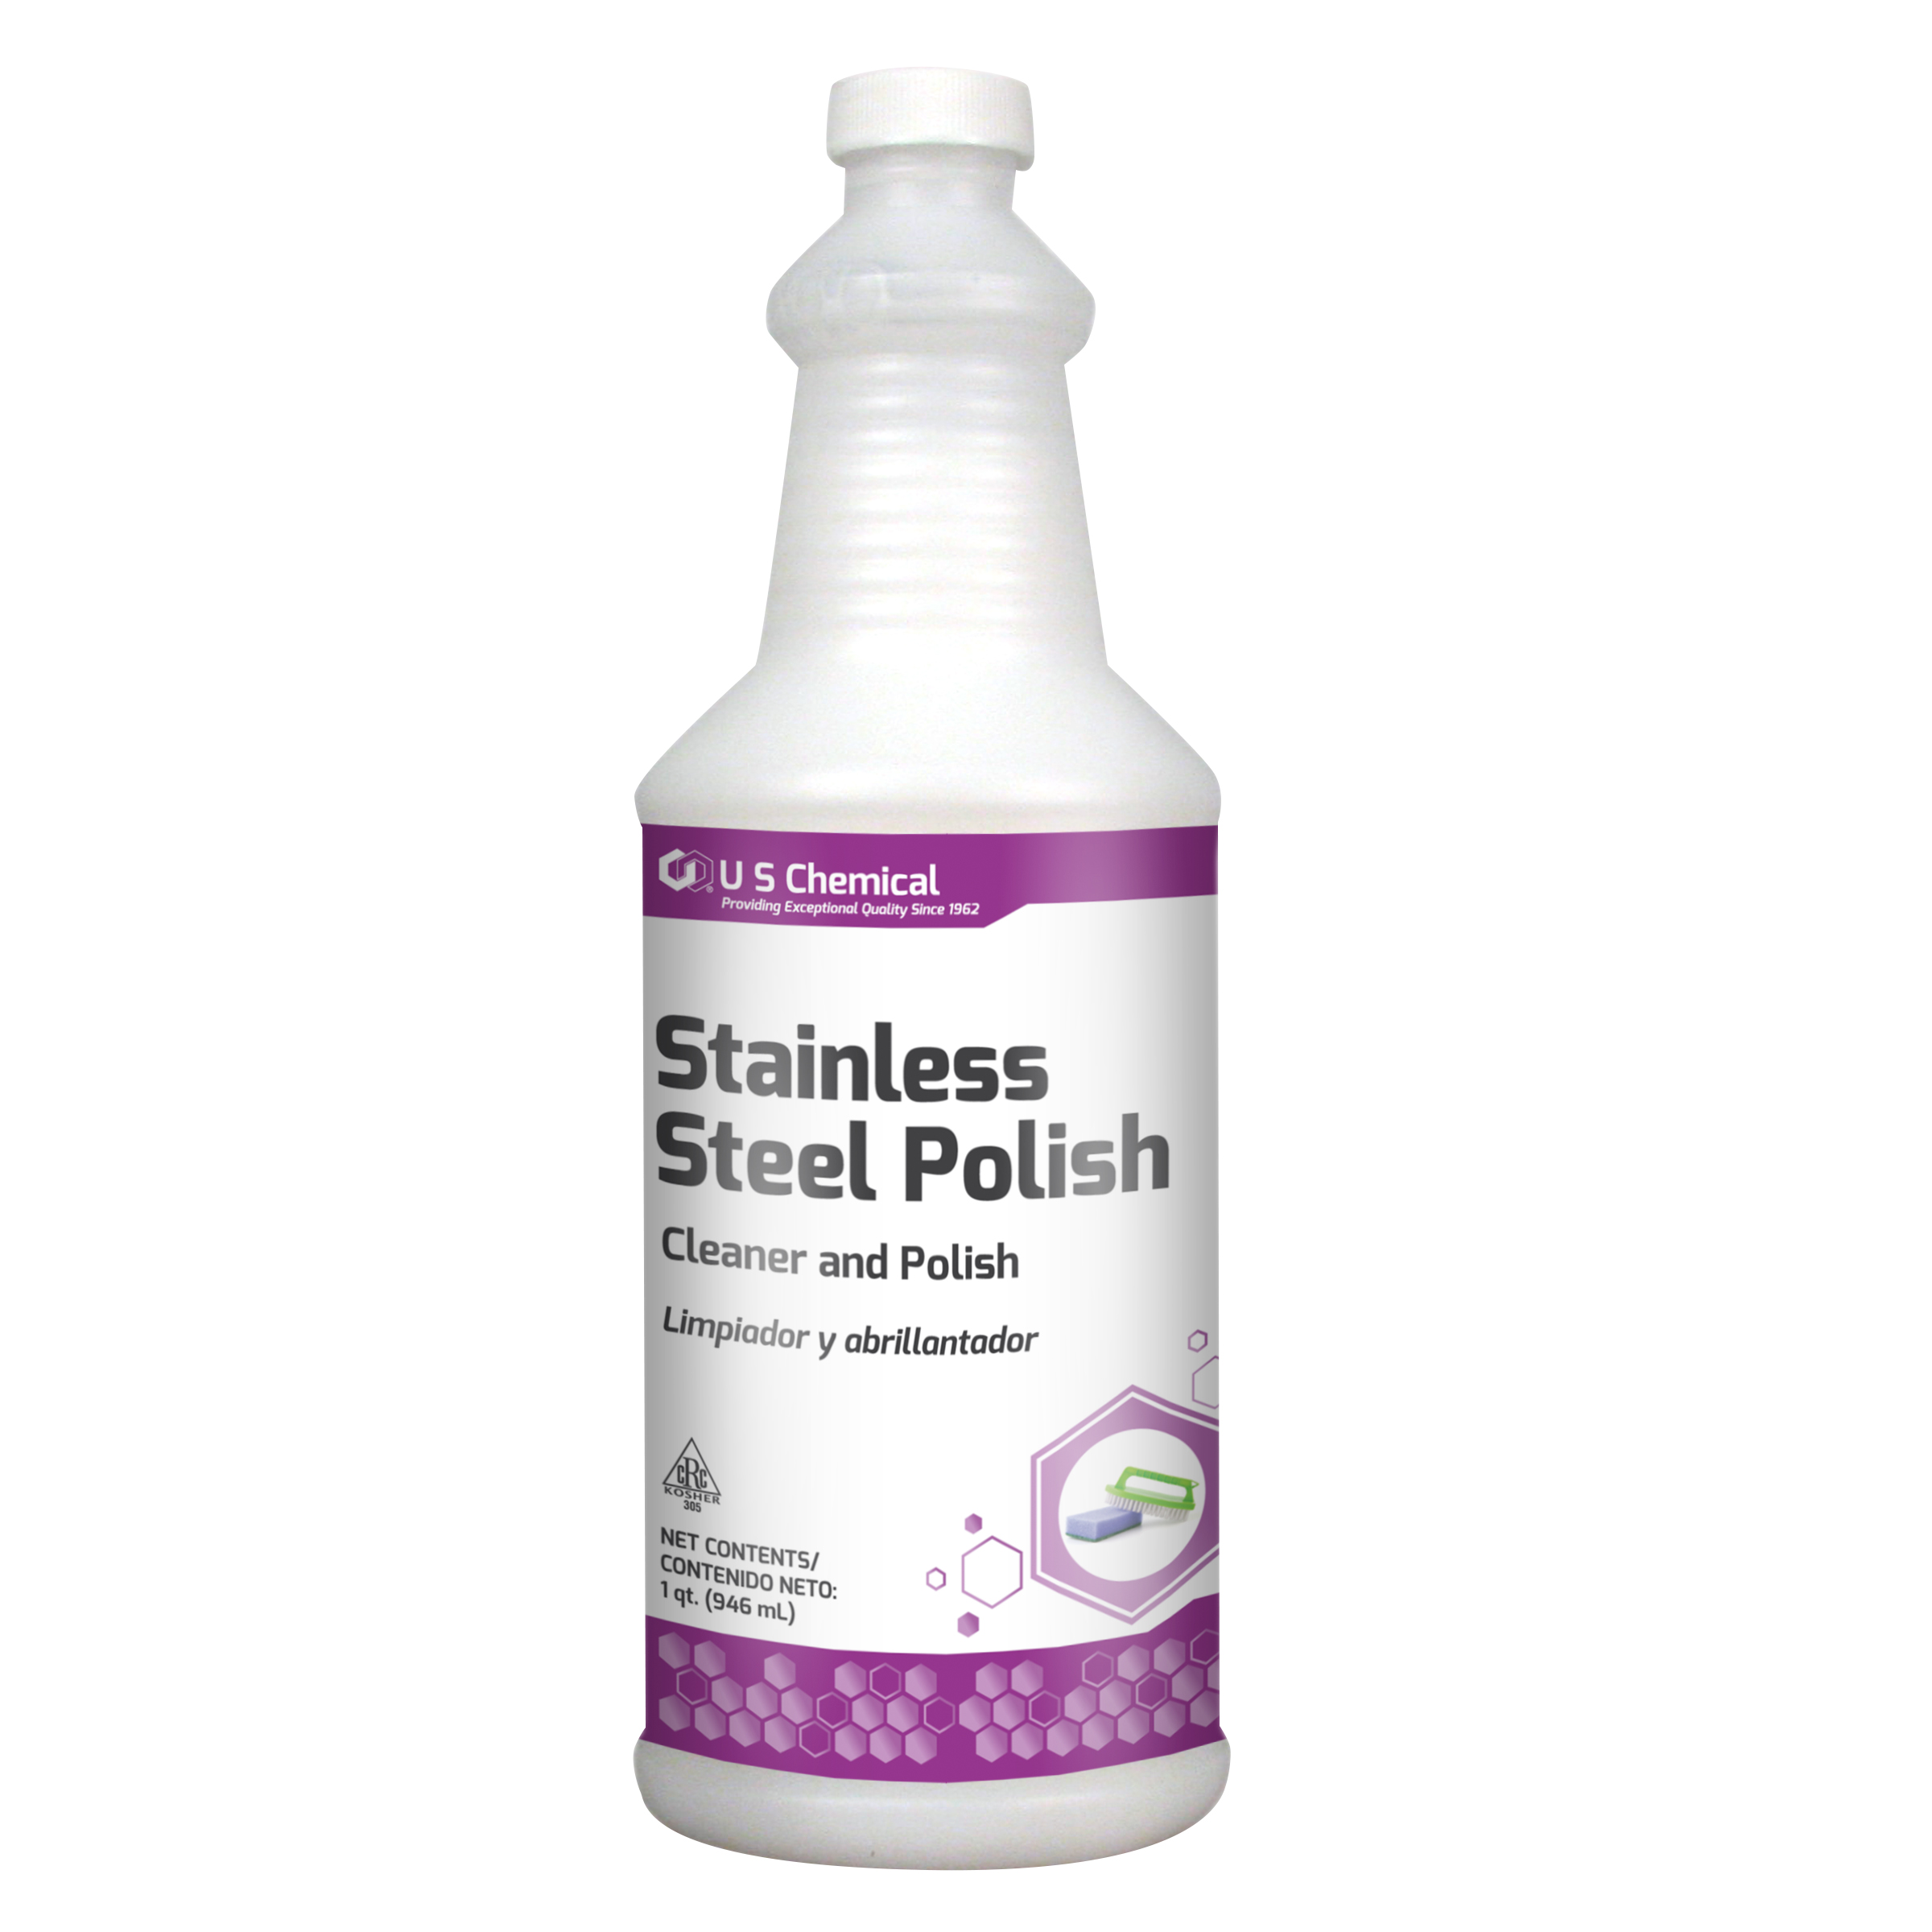 057060_STAINLESS_STEEL_POLISH_1QT